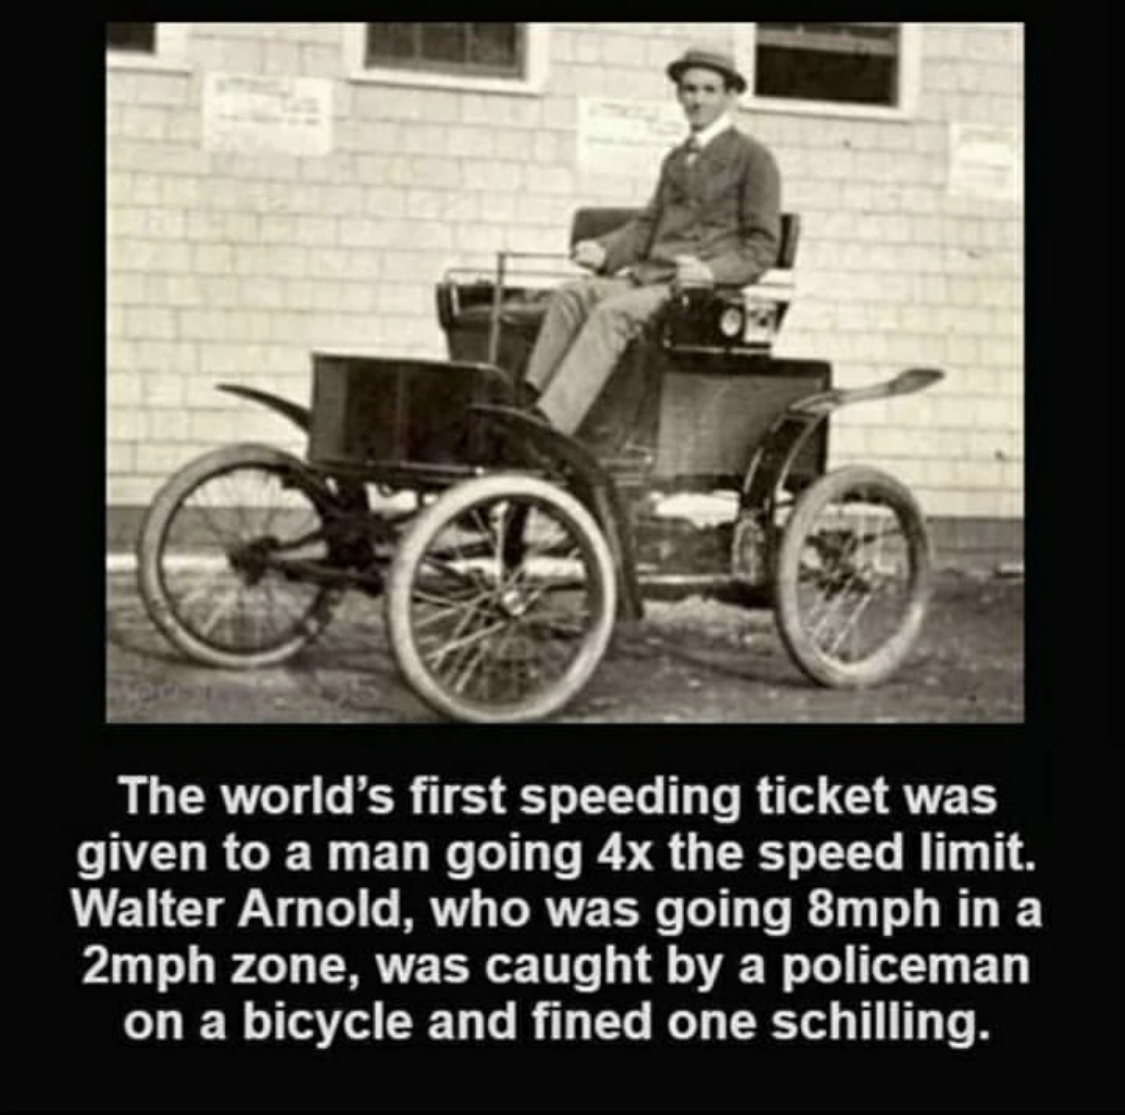 The World's First Speeding Ticket